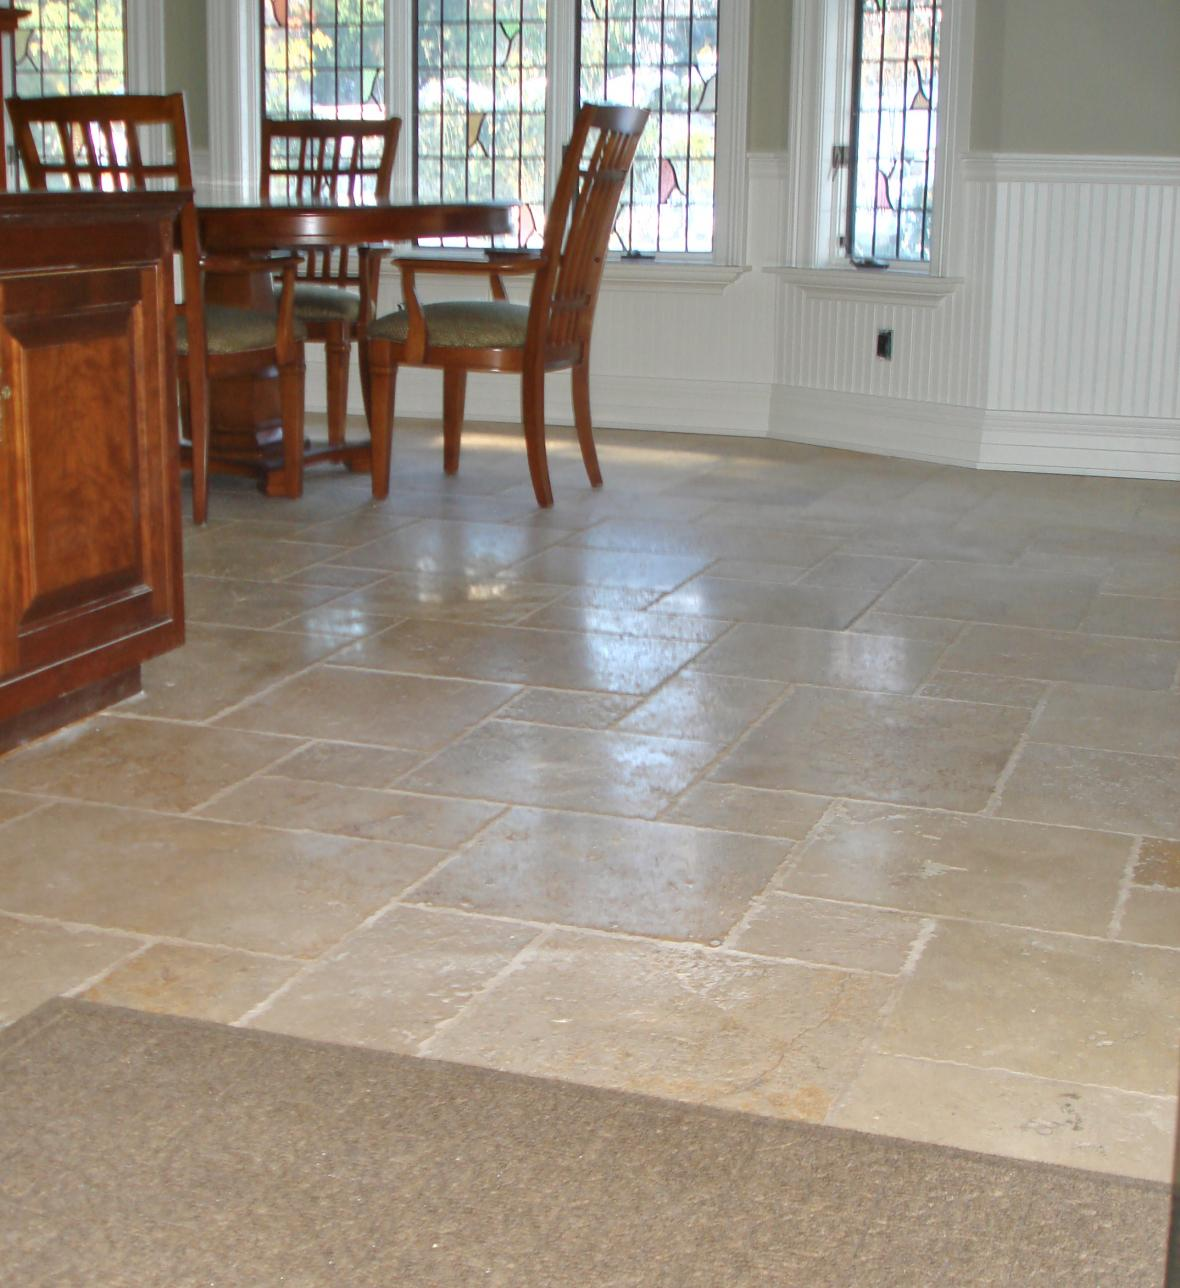 New Kitchen Flooring Ideas: The Best Nonslip Tile Types For Kitchen Floor Tile